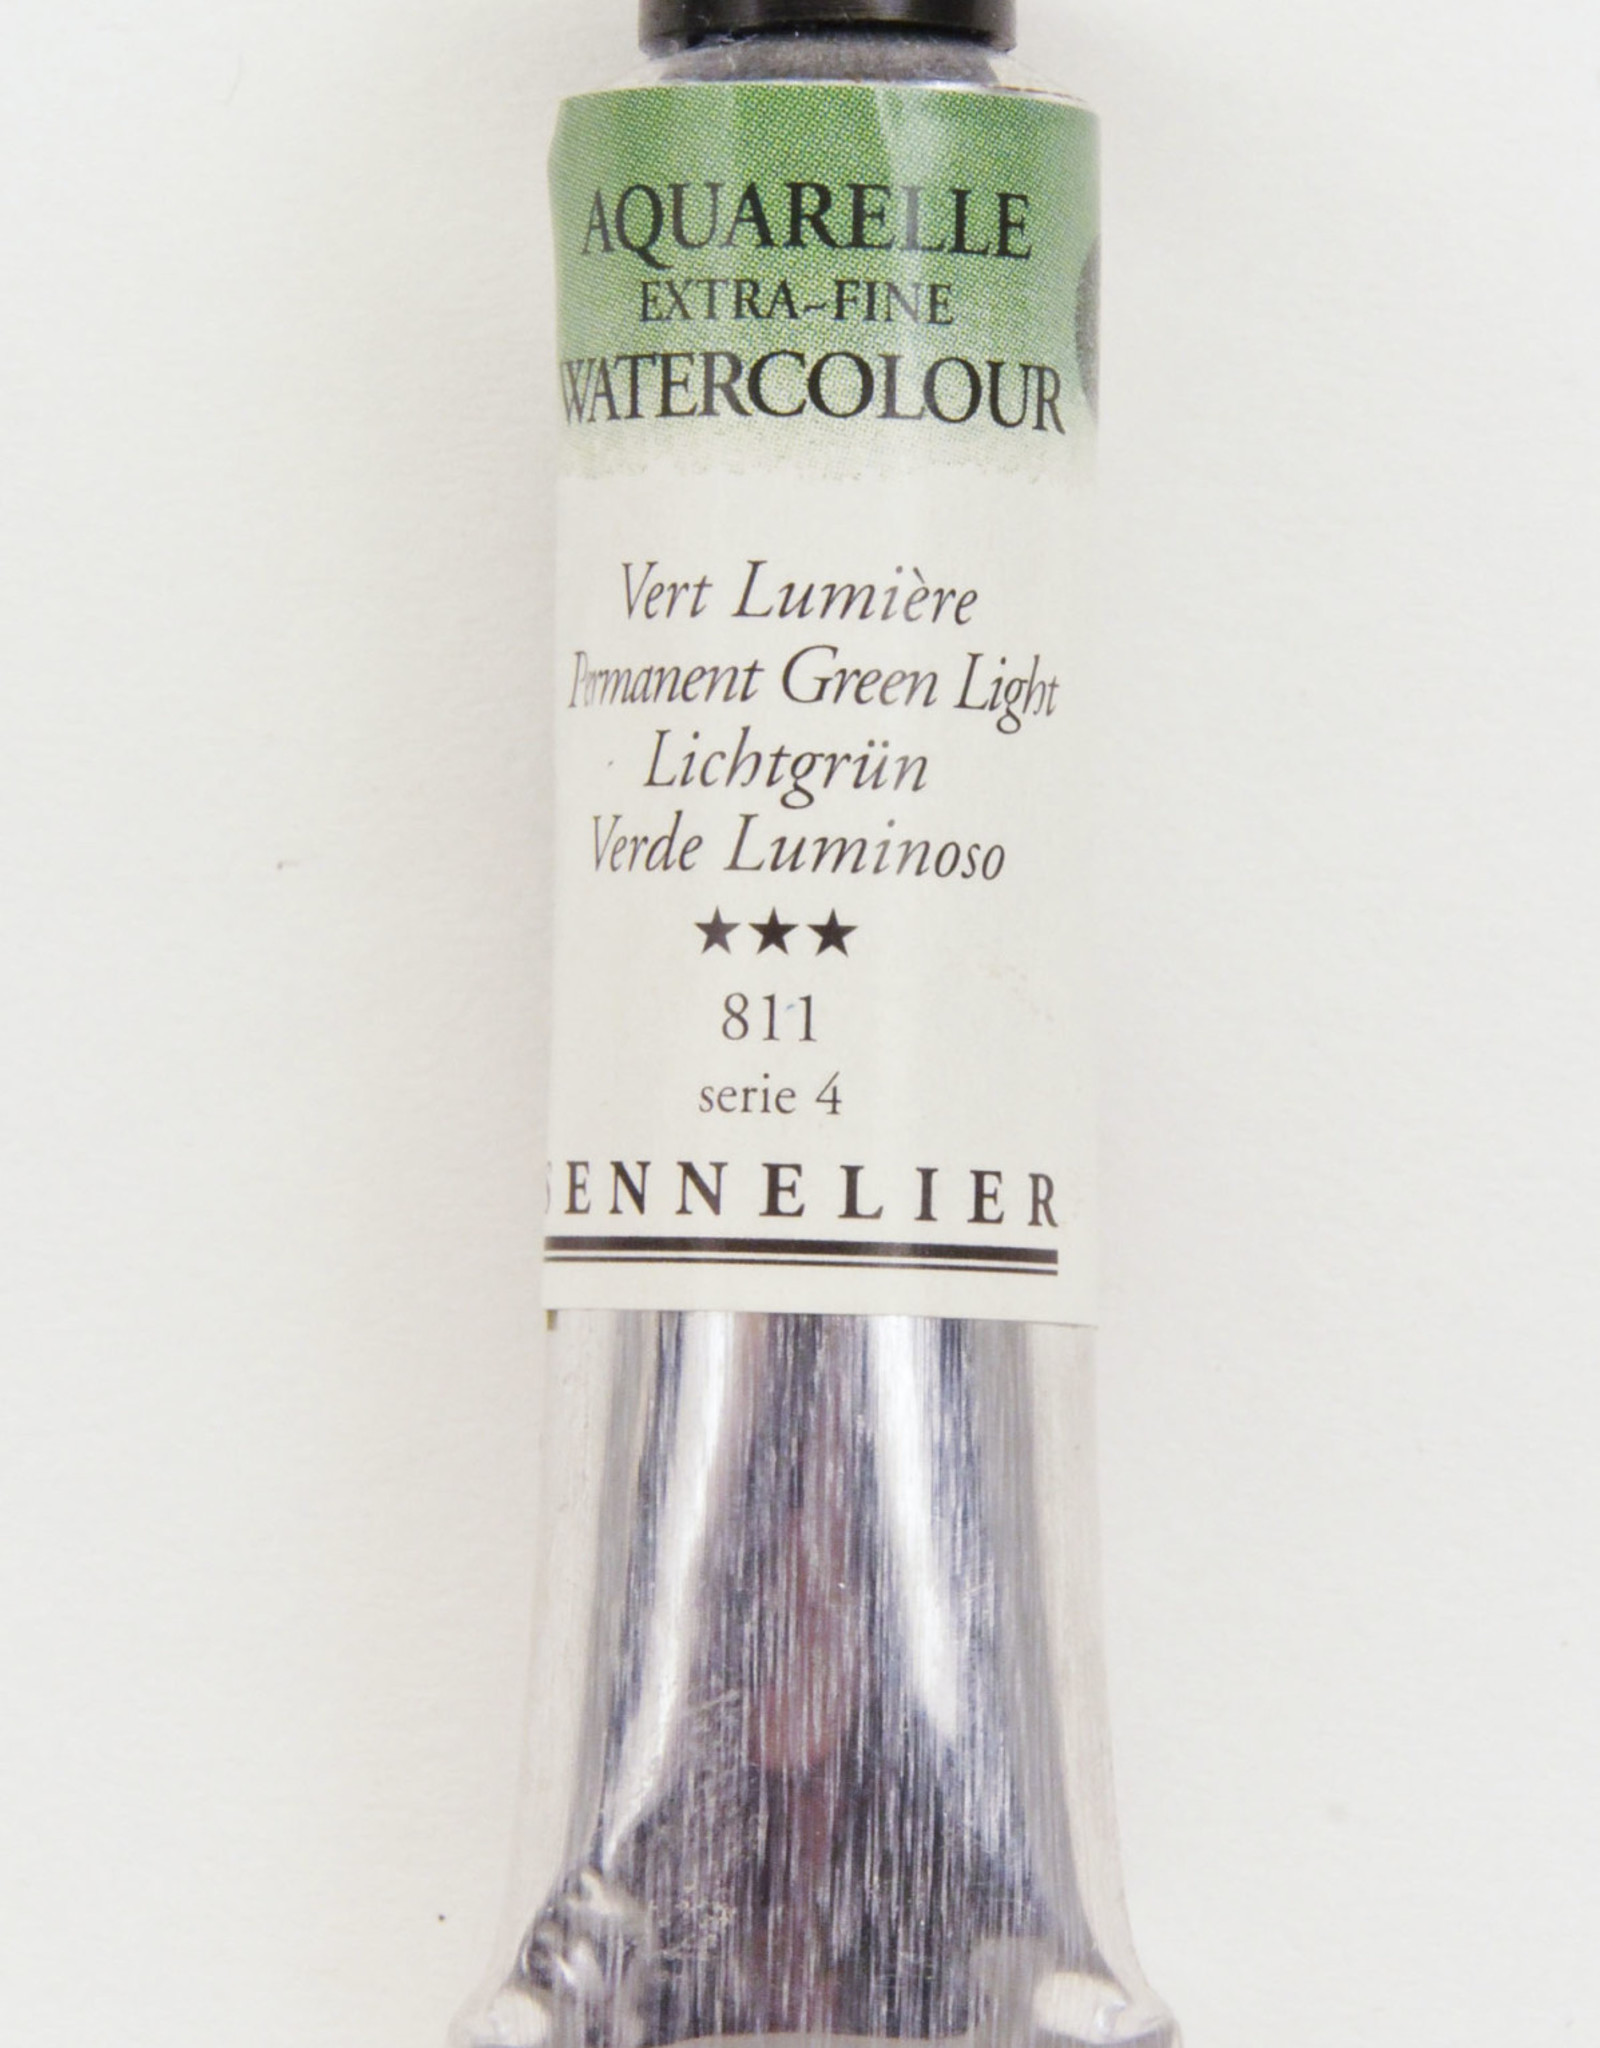 Sennelier, Aquarelle Watercolor Paint, Permanent Green Light, 811,10ml Tube, Series 4